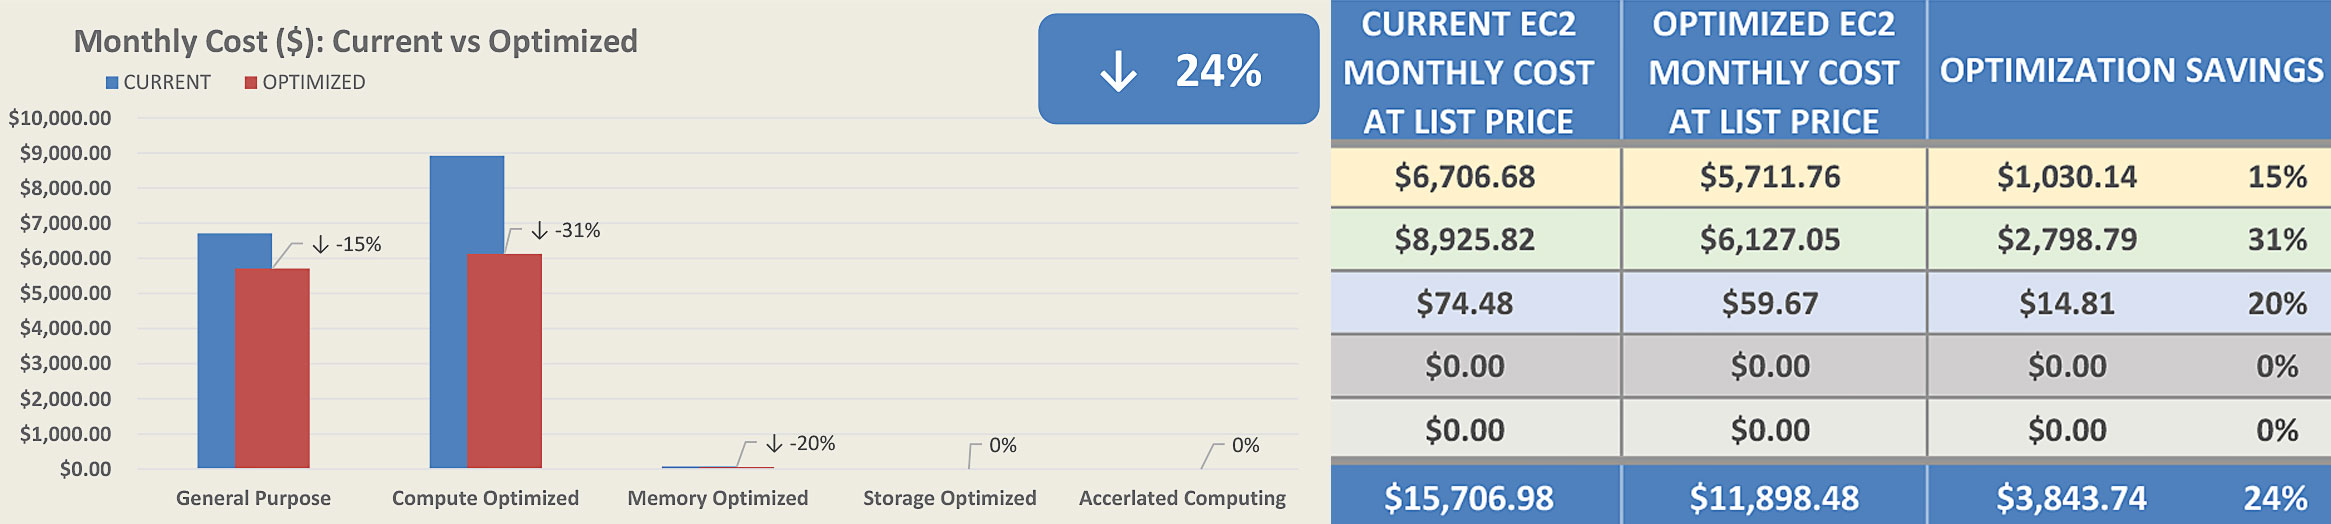 EC2 optimization report: AWS cost reduction